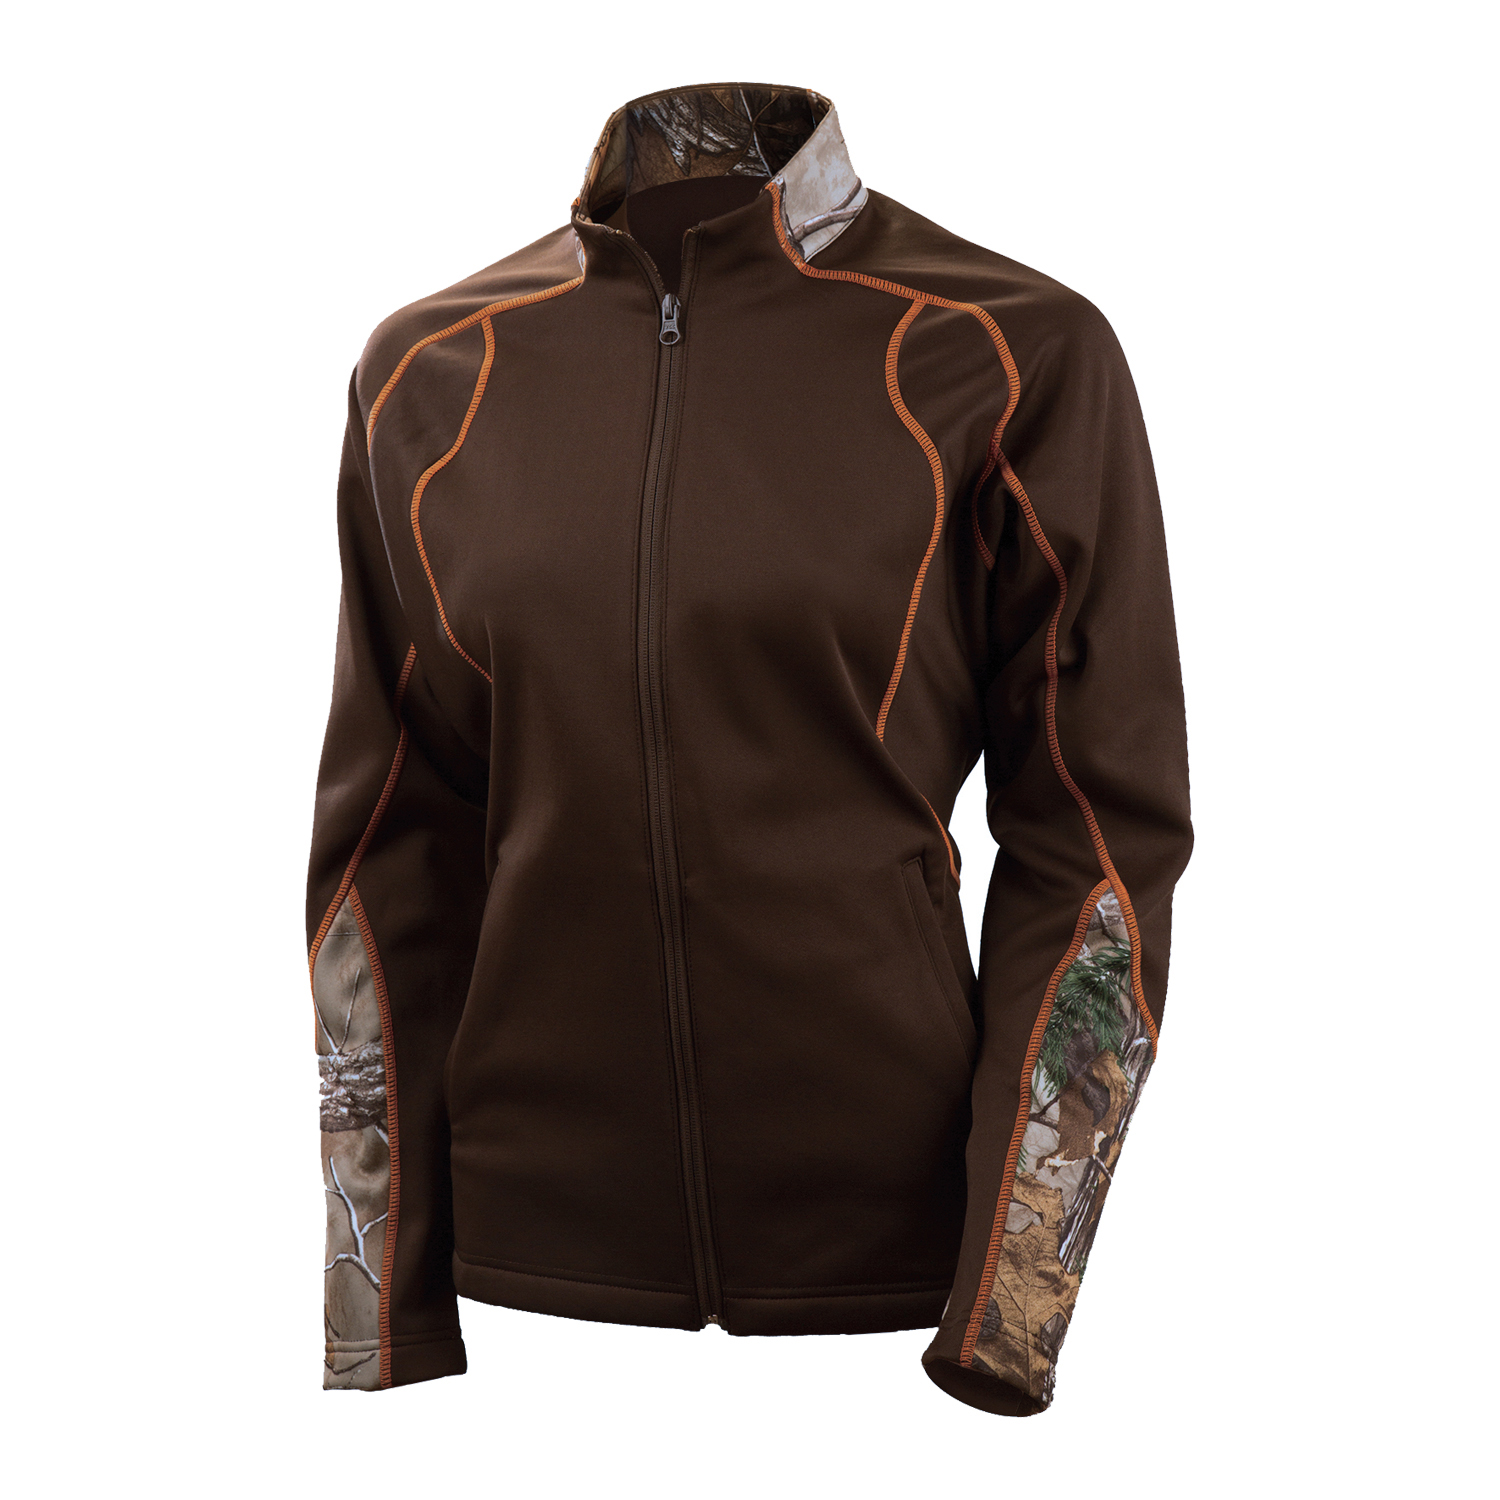 Gamehide Women's Pathfinder Jacket